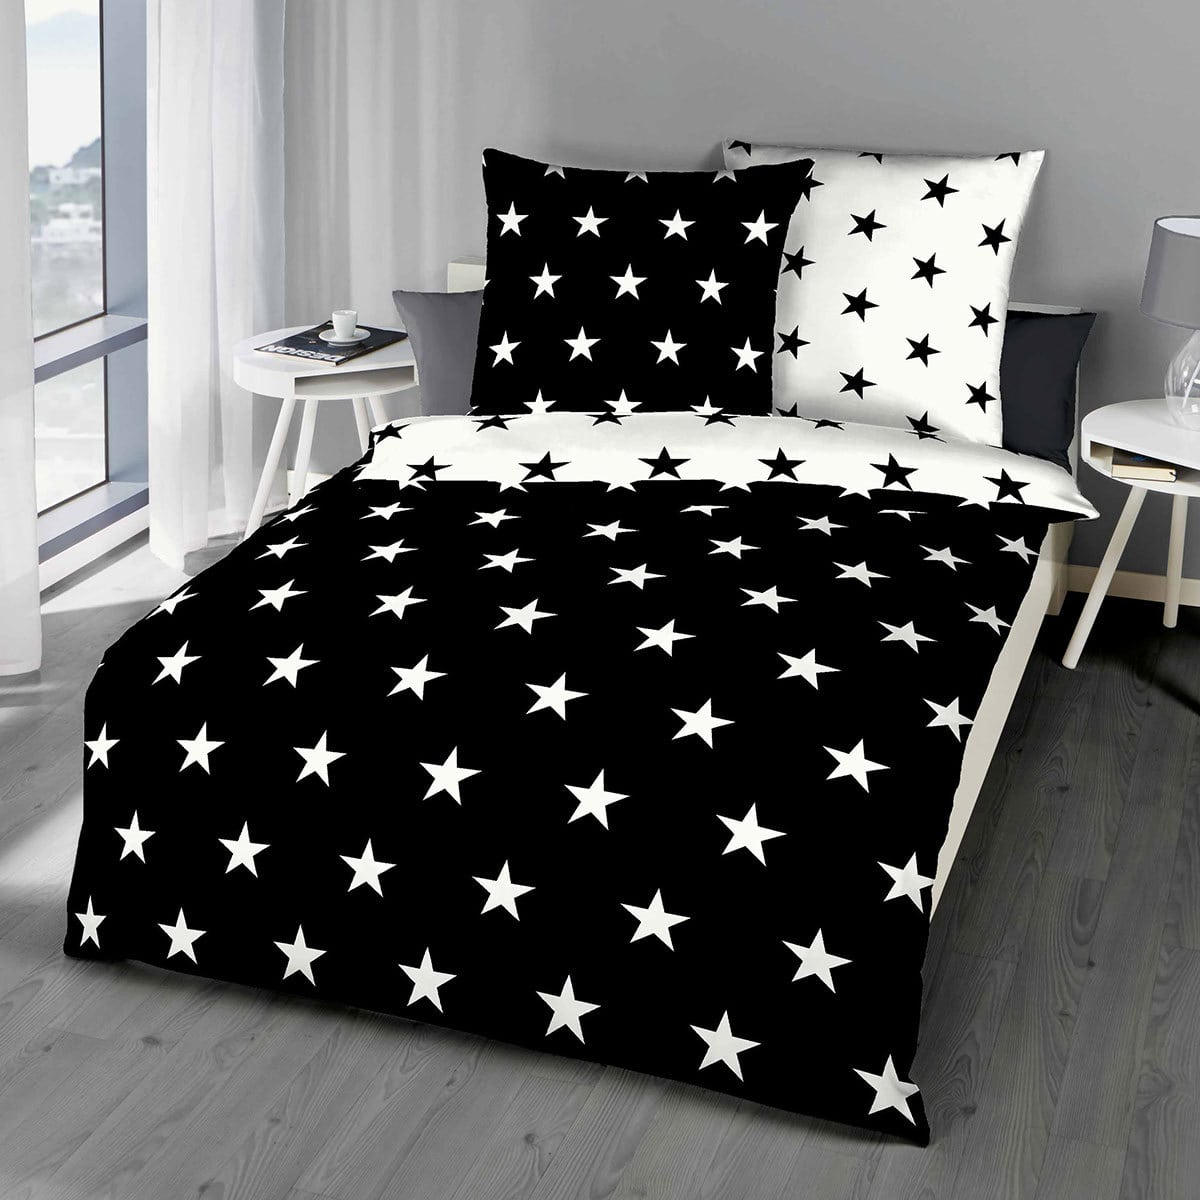 bettwarenshop mako satin bettw sche stars schwarz g nstig. Black Bedroom Furniture Sets. Home Design Ideas